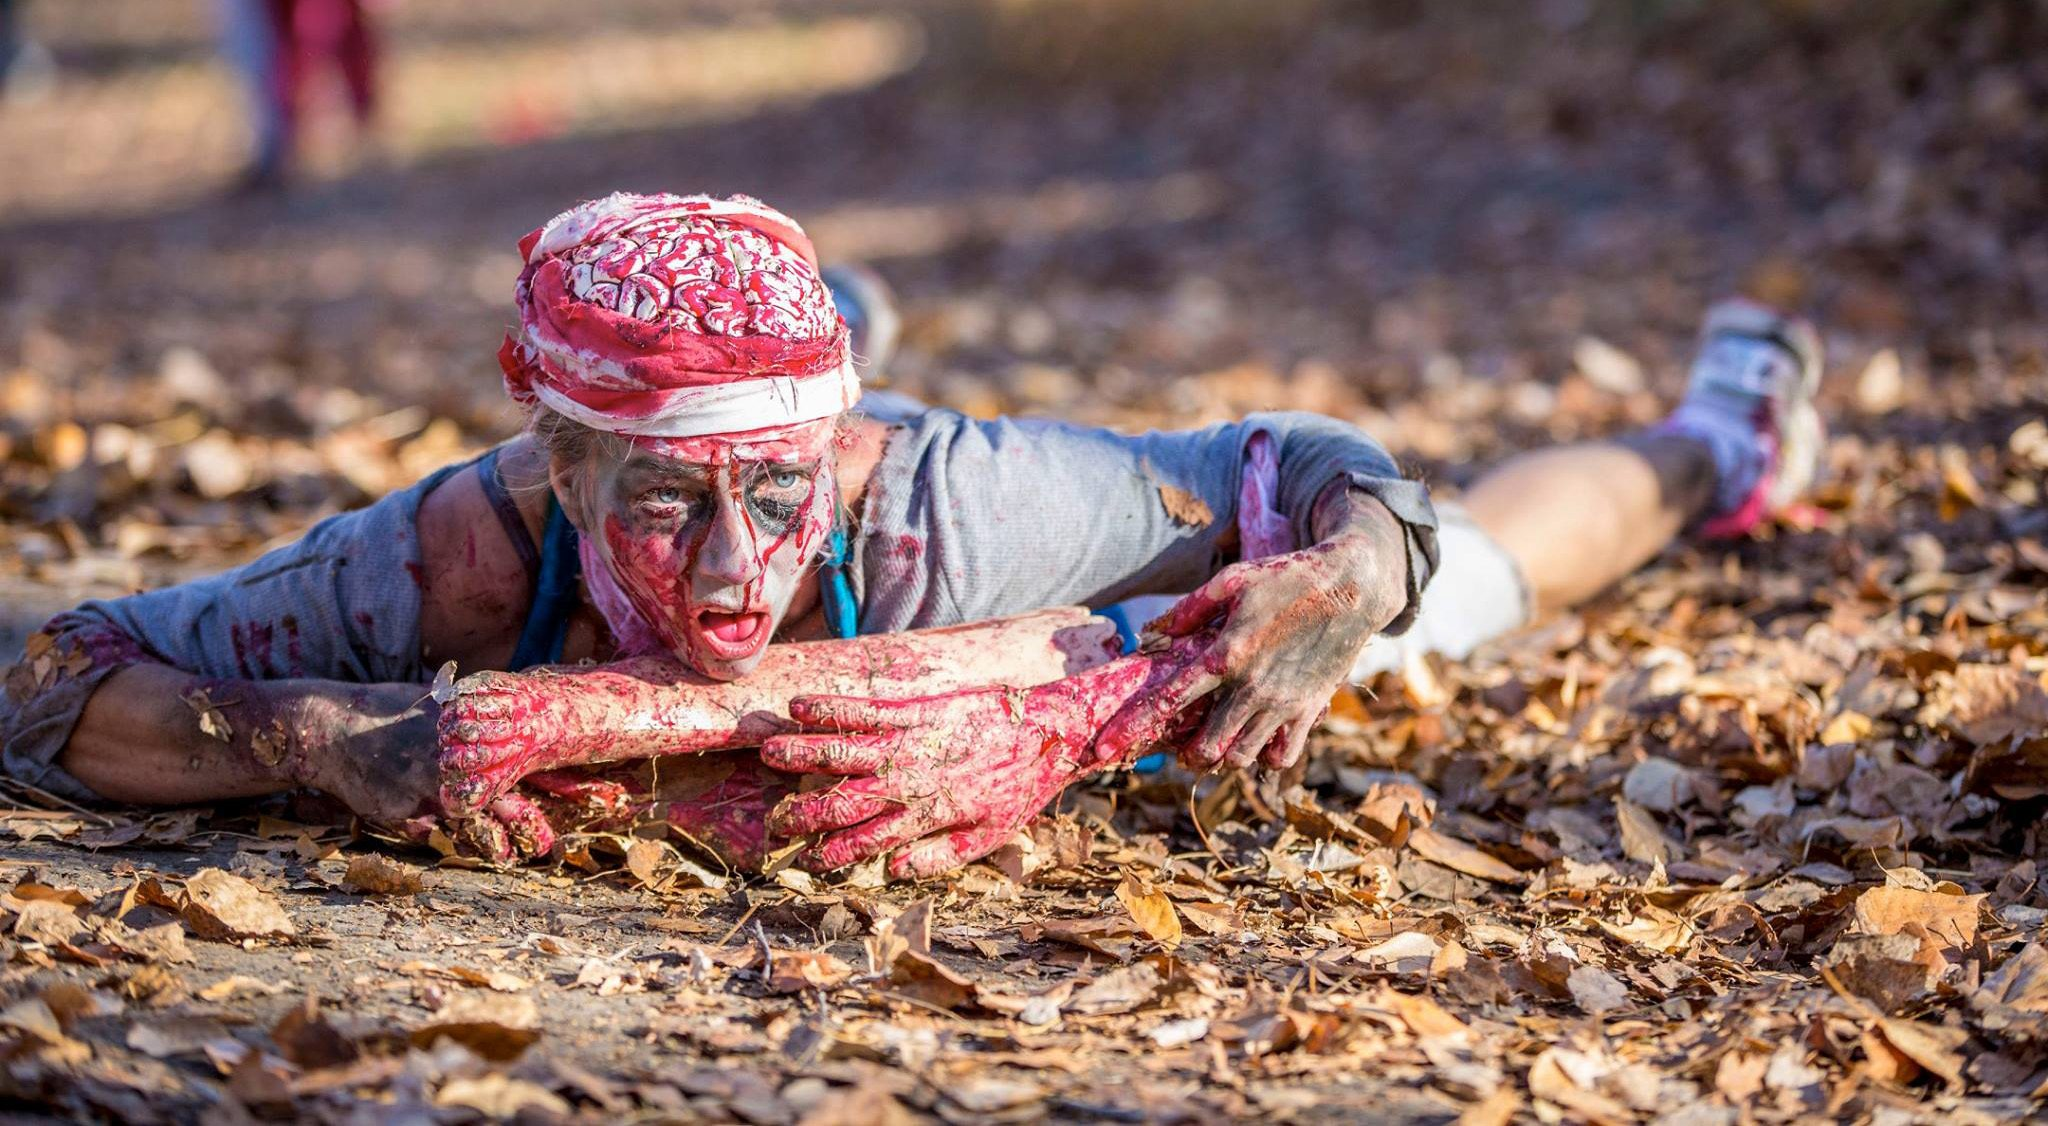 Zombie Run Calgary 2016 pits undead against survivors in October